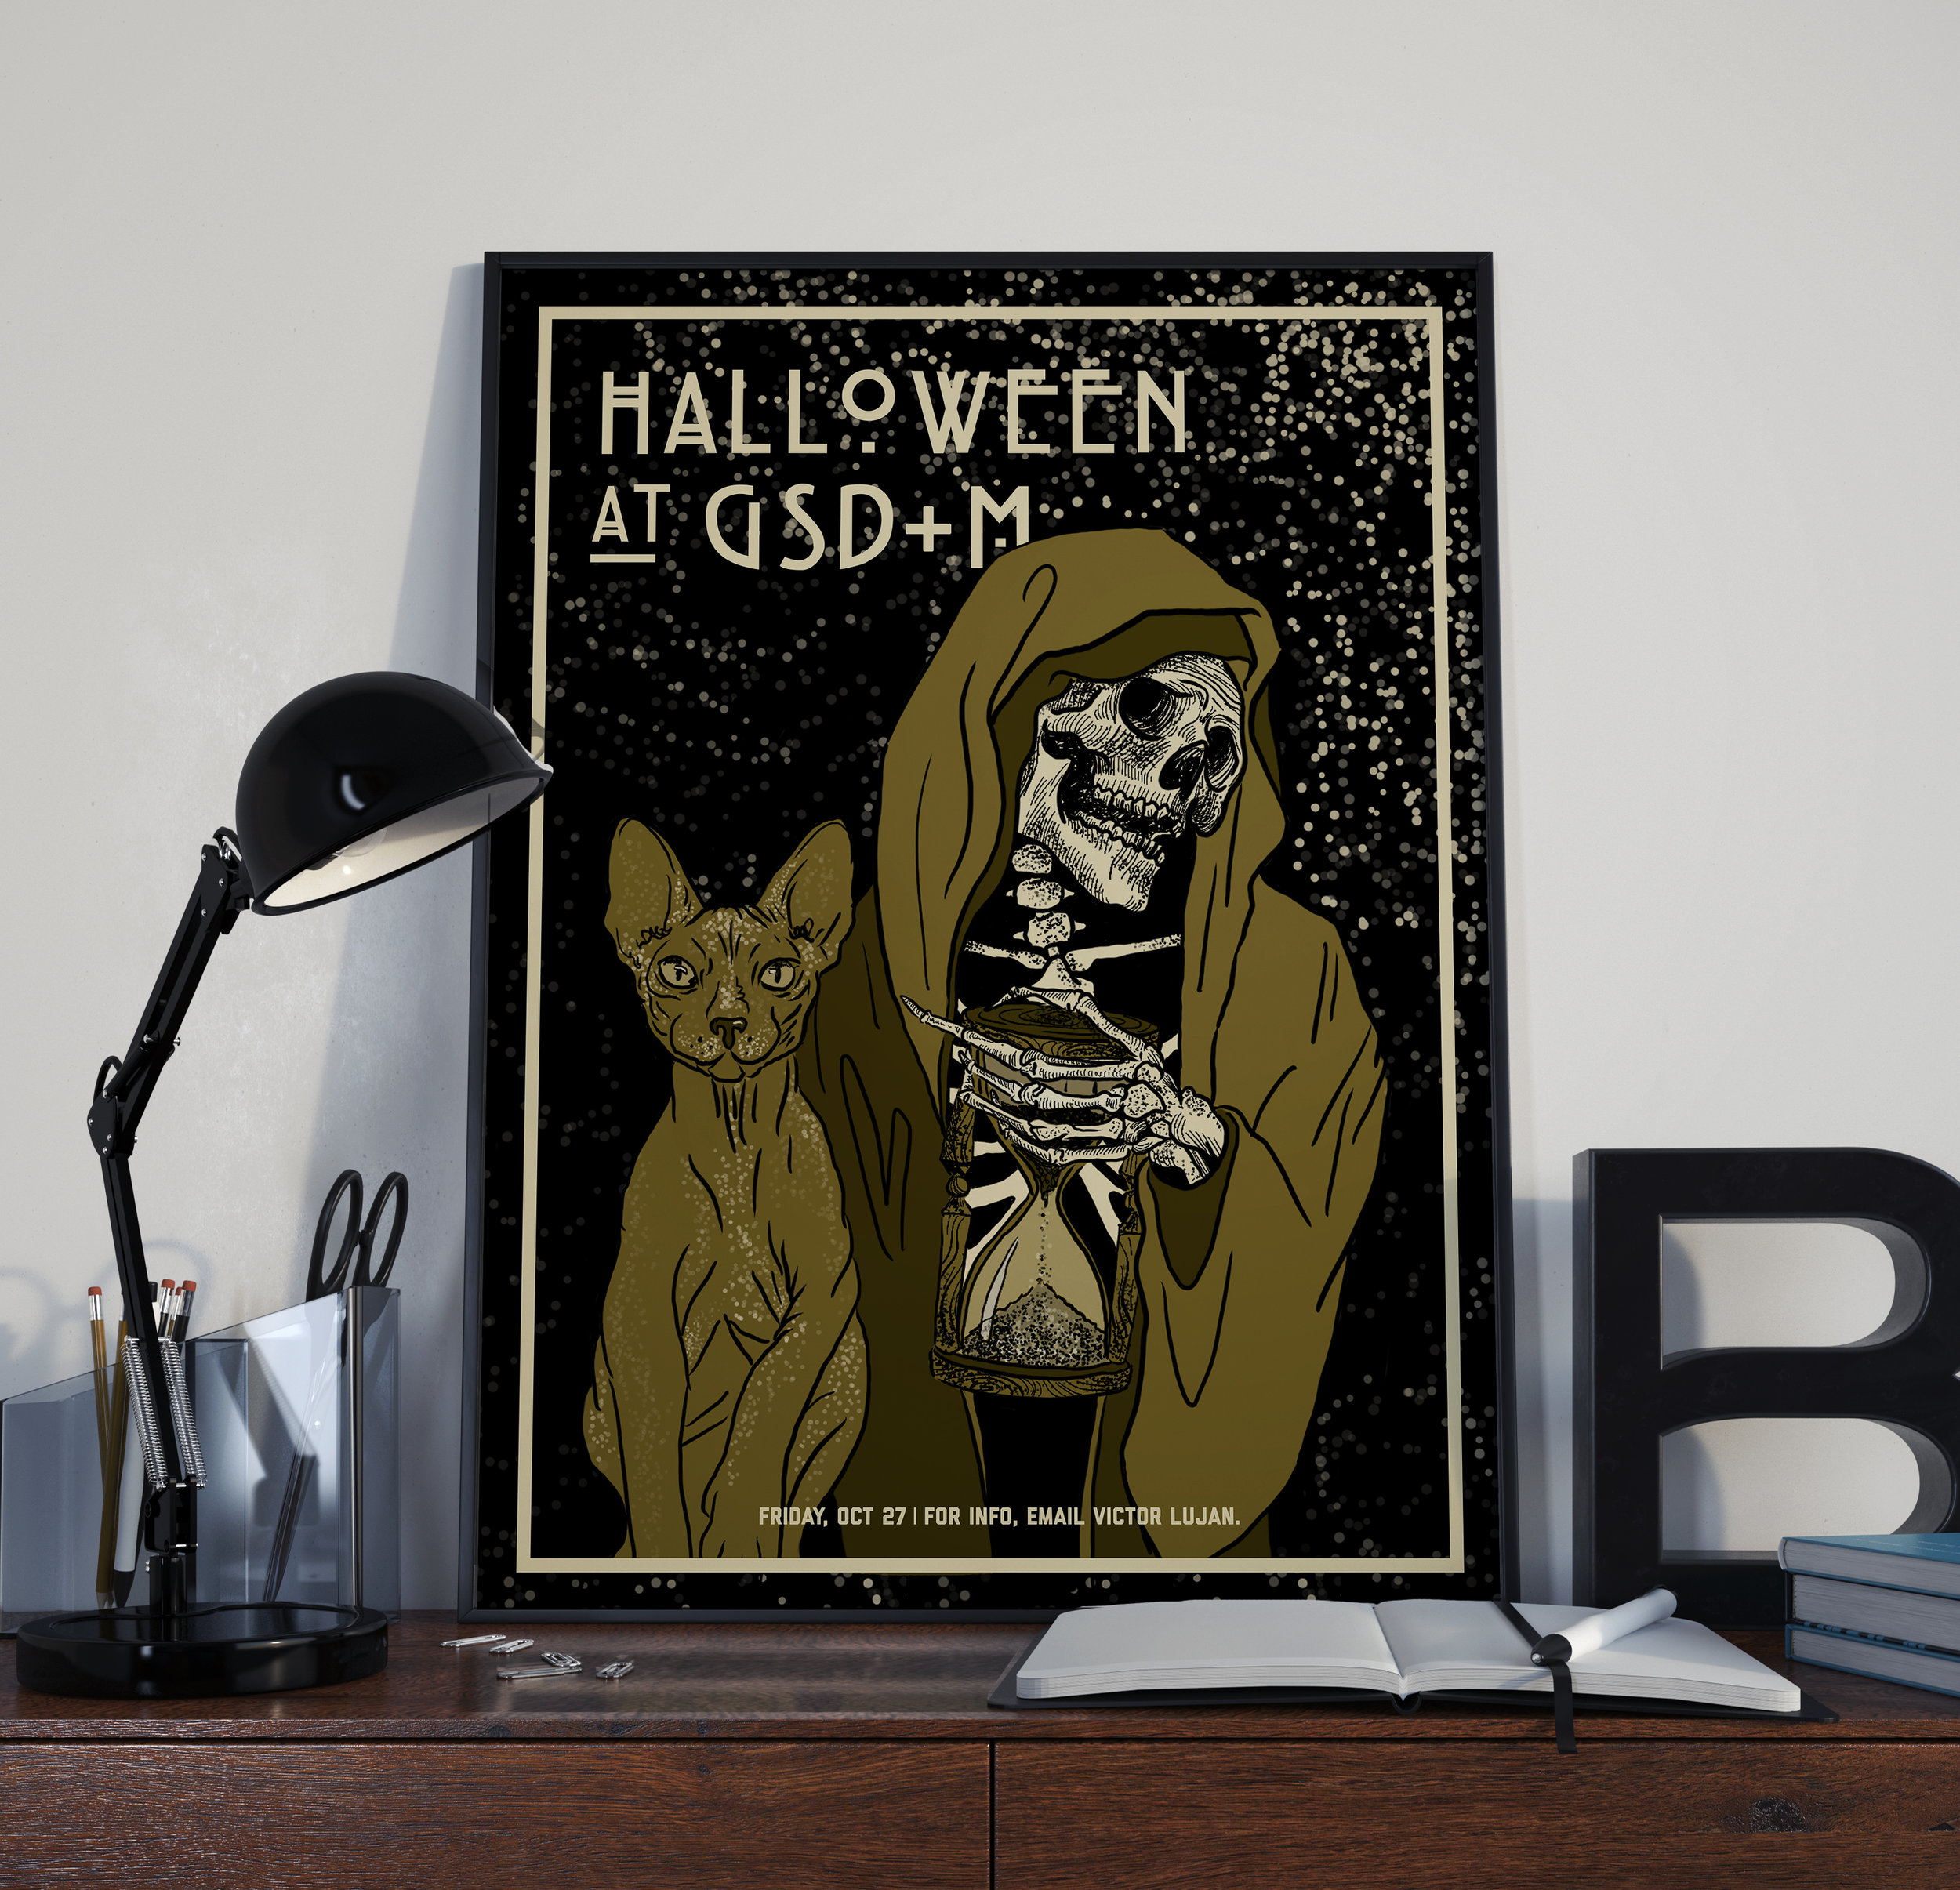 Above is a poster design I created for the GSD&M Halloween party. I created the concept, illustrated the poster on Procreate using my iPad, and then mounted the poster for display in our office.